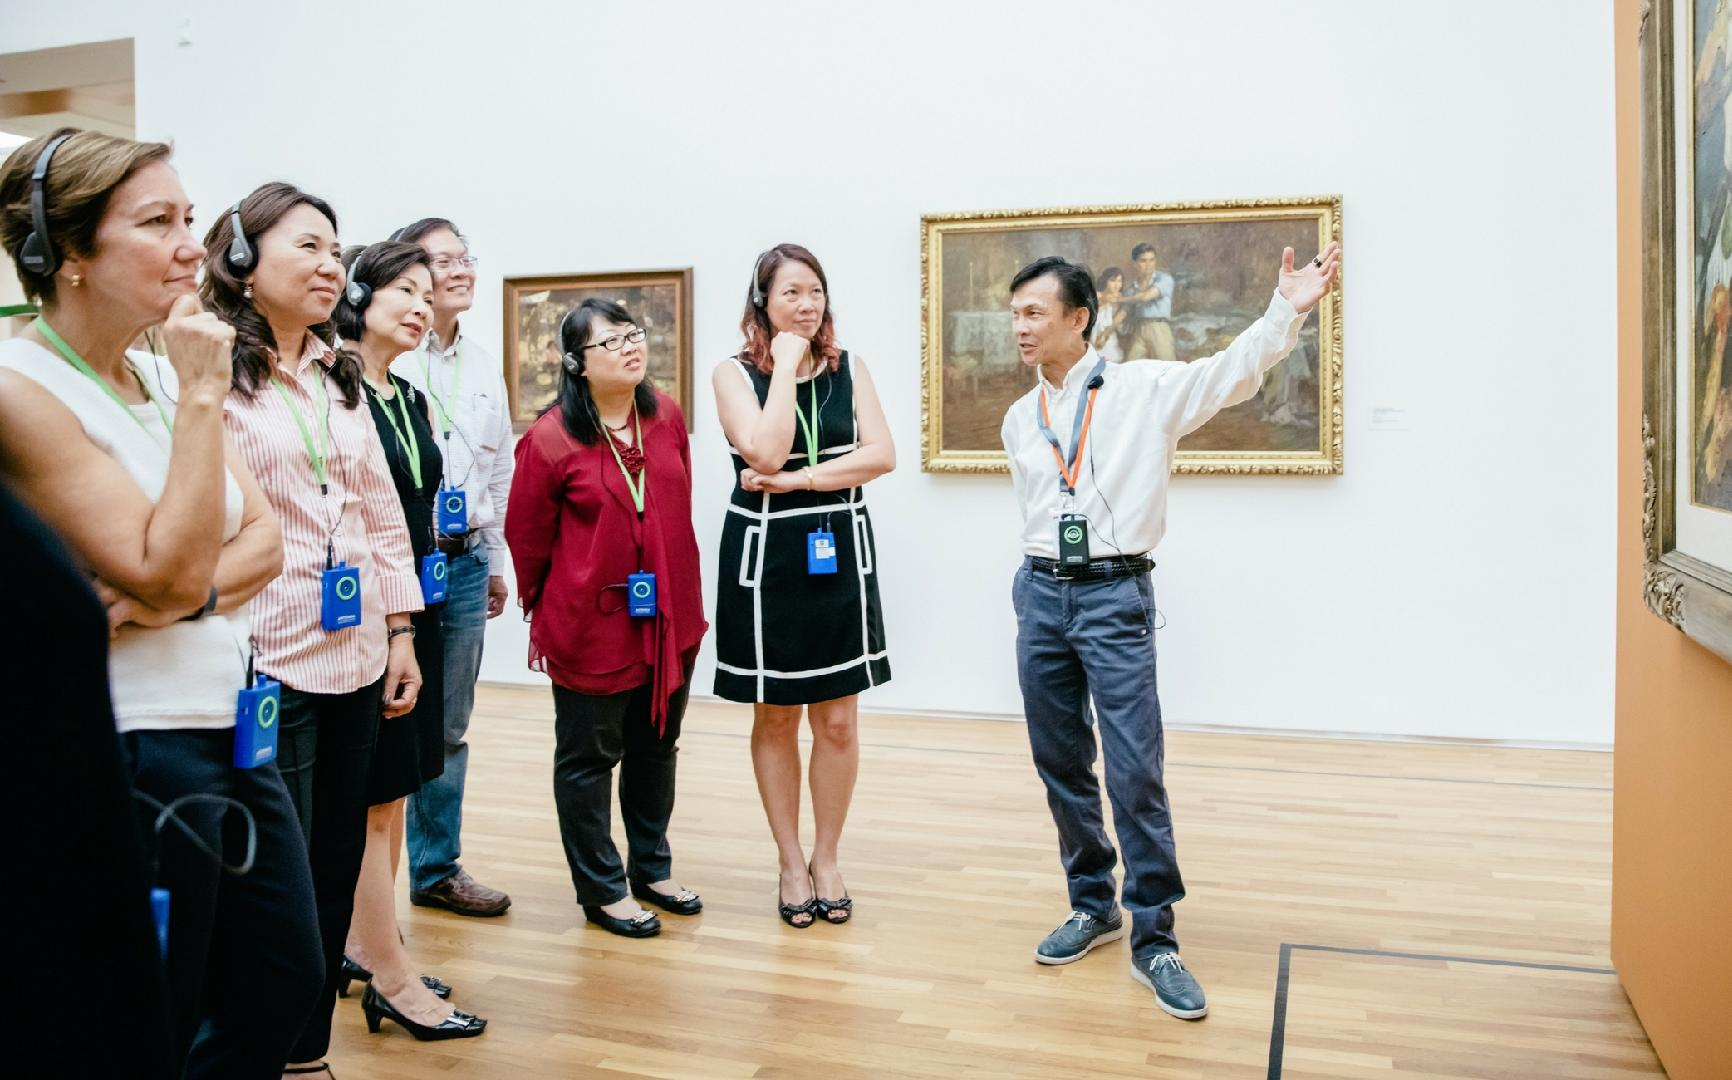 About 5.1 million visitors flocked to various museums and heritage institutions in Singapore during 2016.